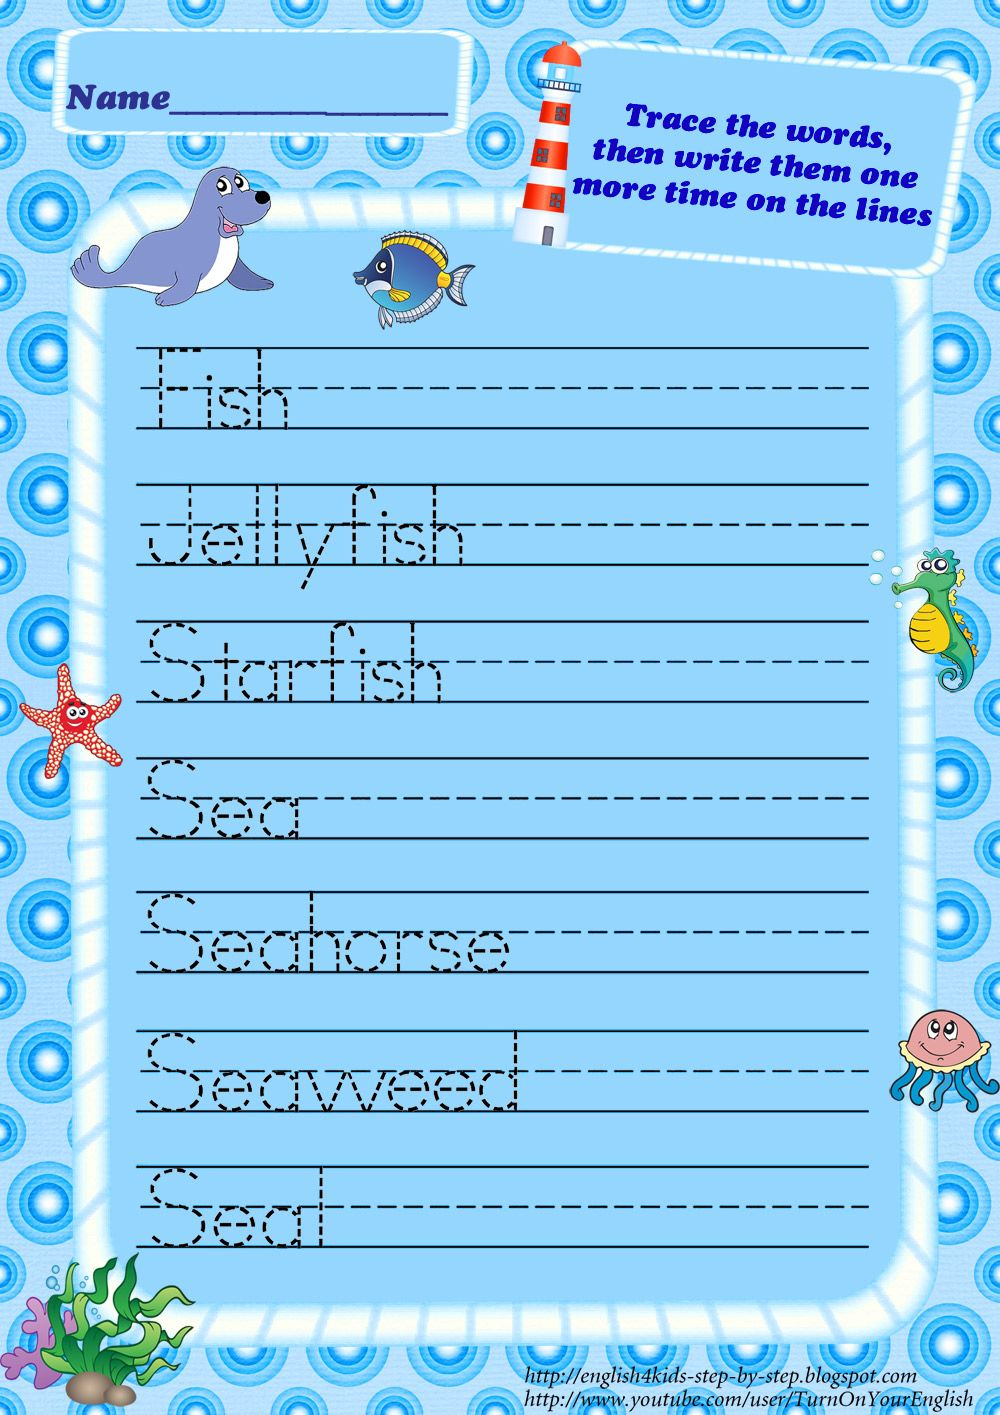 ocean handwriting | ocean animals trace words handwriting worksheet ...